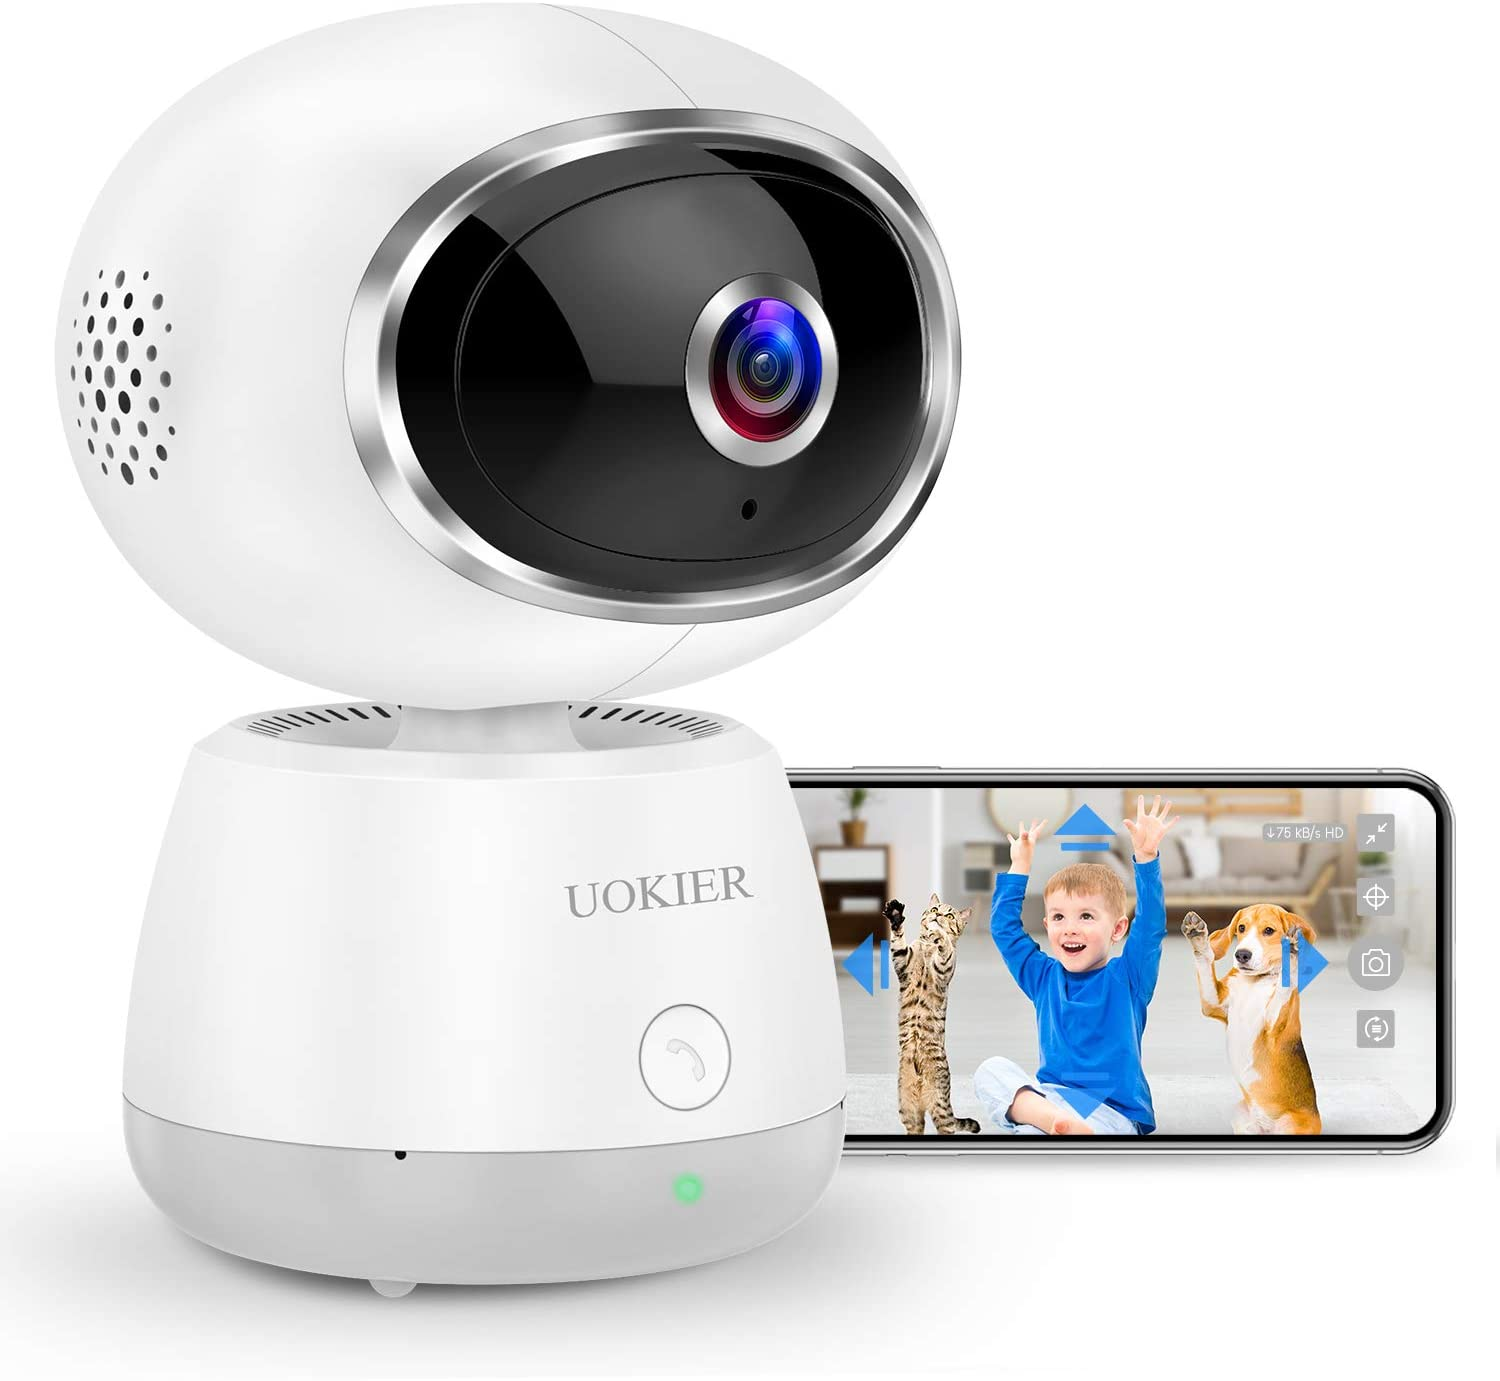 WiFi Home Security Camera UOKIER Wi-Fi Indoor Pan/Tilt/Zoom IP Pet Camera, 1080P Baby Monitor with Smart Motion Detection, Motion Tracking, Night Vision, 2-Way Audio, TF/Cloud Storage